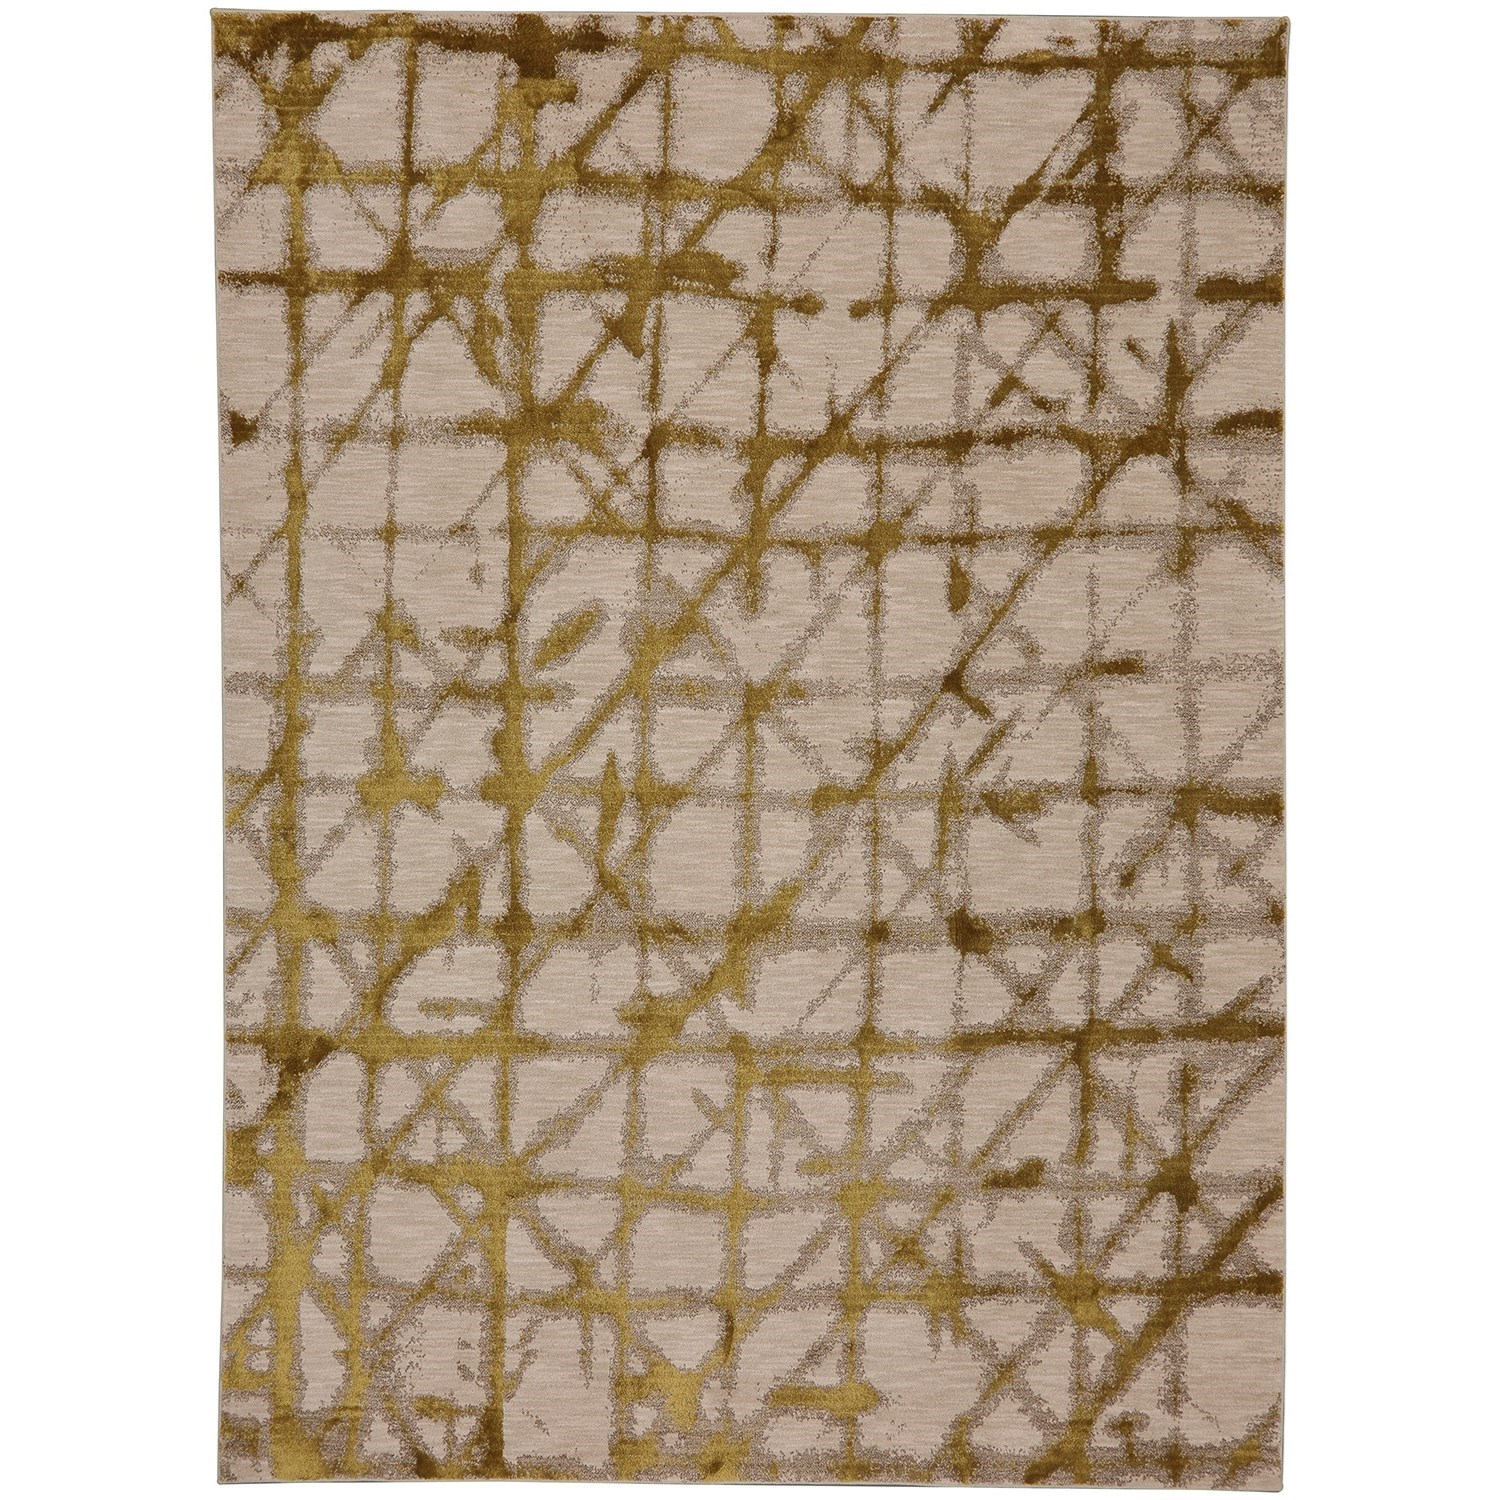 """Enigma 9' 6""""x12' 11"""" Rectangle Geometric Area Rug by Karastan Rugs at Darvin Furniture"""